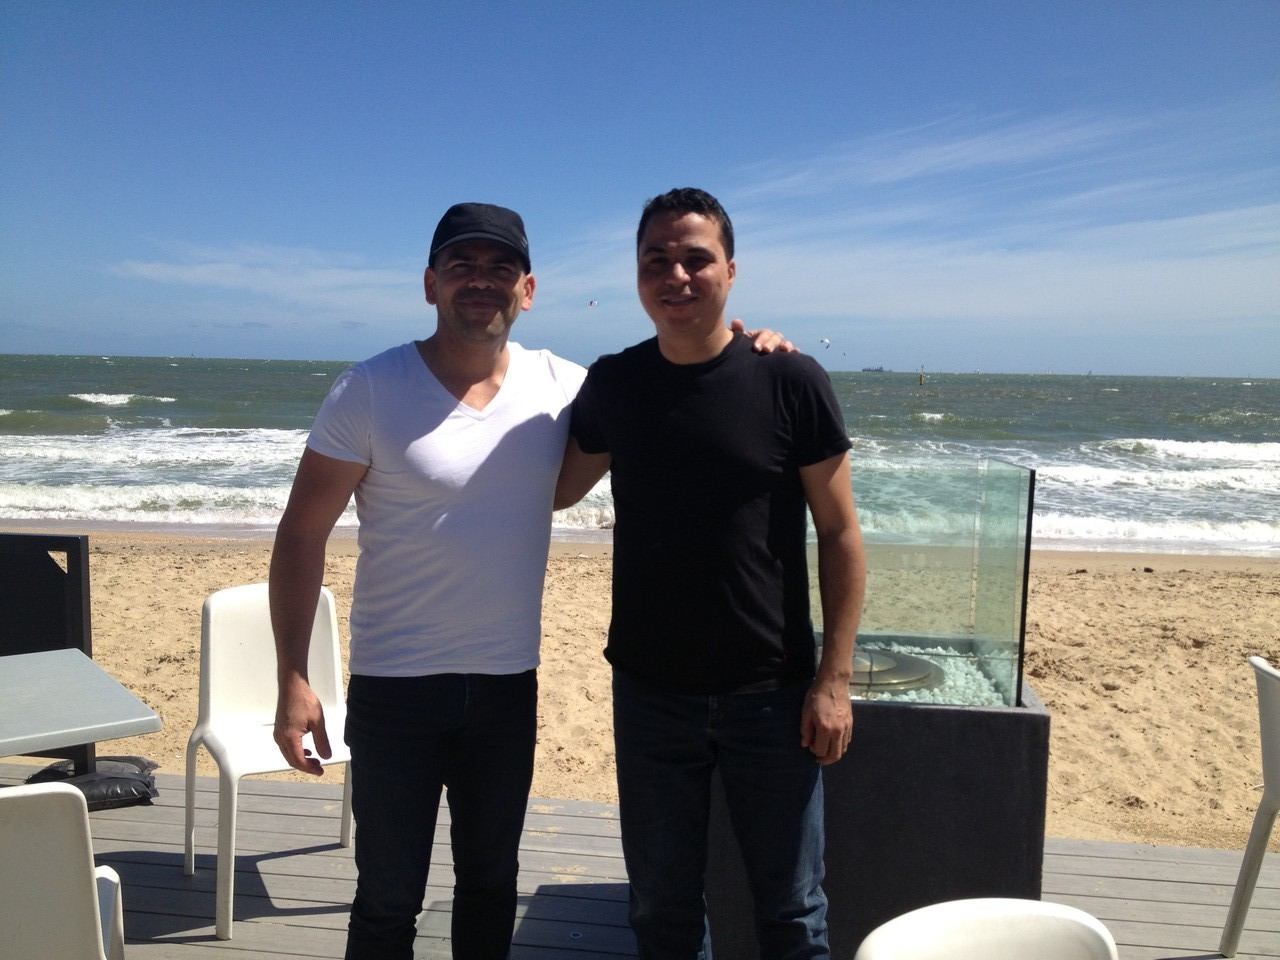 I meet Germán Silva - a great singer that I did some arrangements for. Until now we've only been in touch online. He takes me for a drink by the beach ...  https://itunes.apple.com/gb/album/unchained-melody-salsa/id445677080?i=445677114 — with Germán Sil